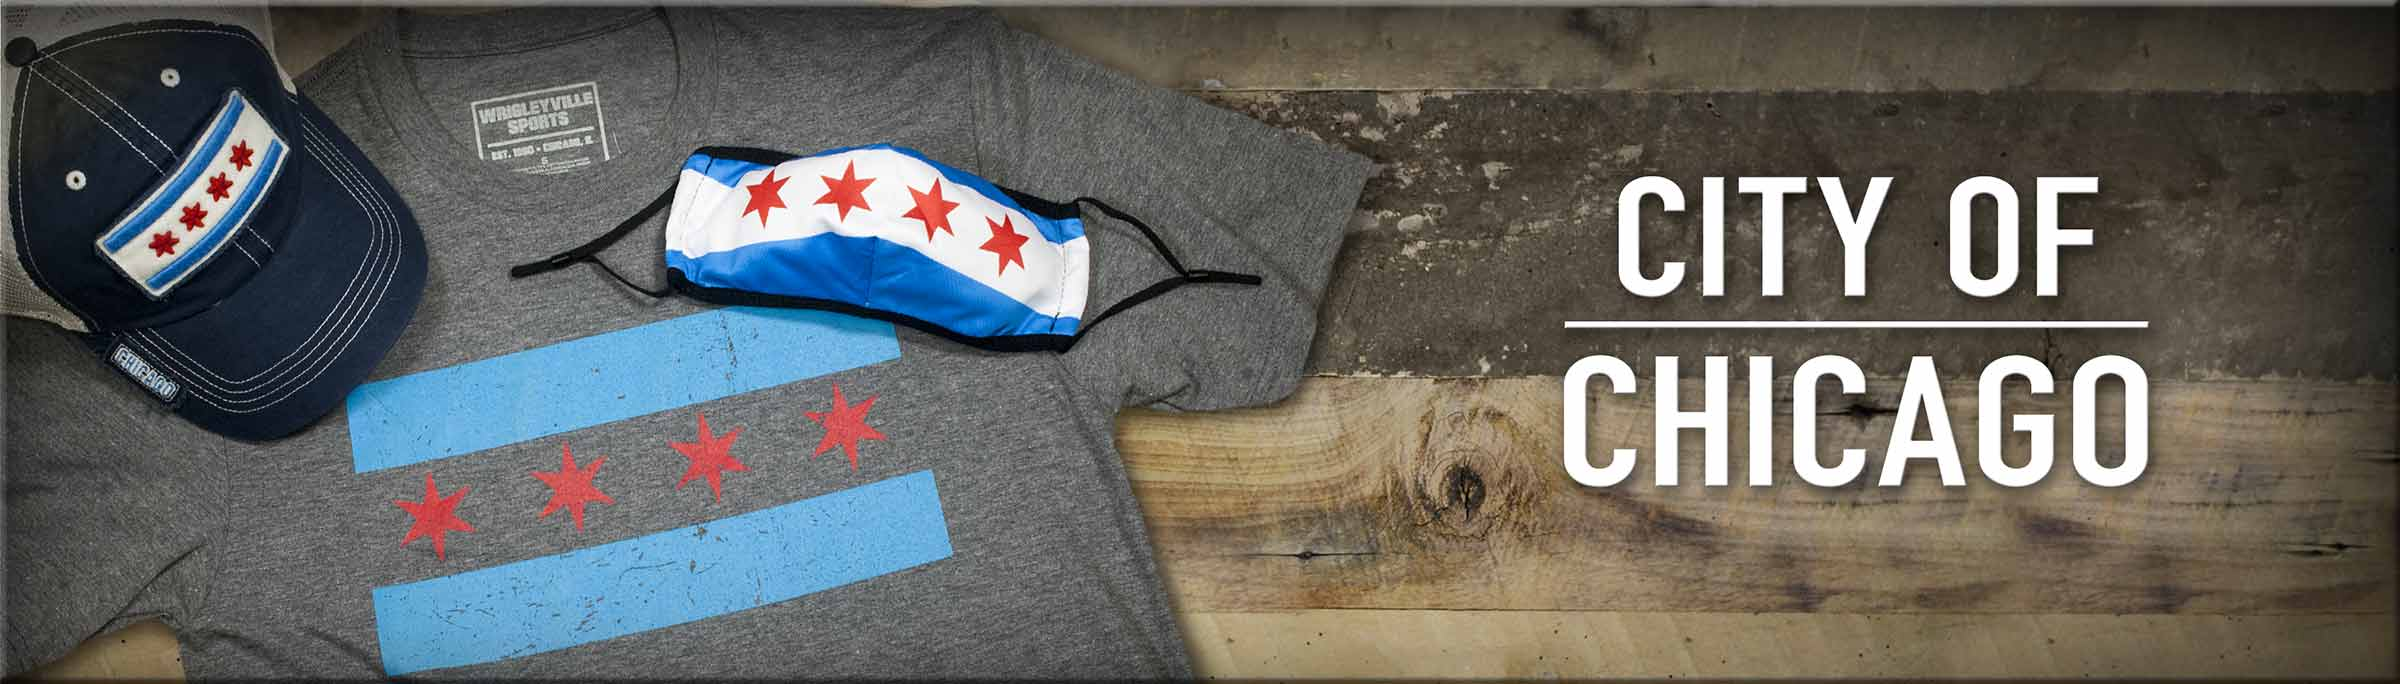 Shop City Of Chicago Merchandise, including this City Of Chicago My Kind of Town tee from Homage.